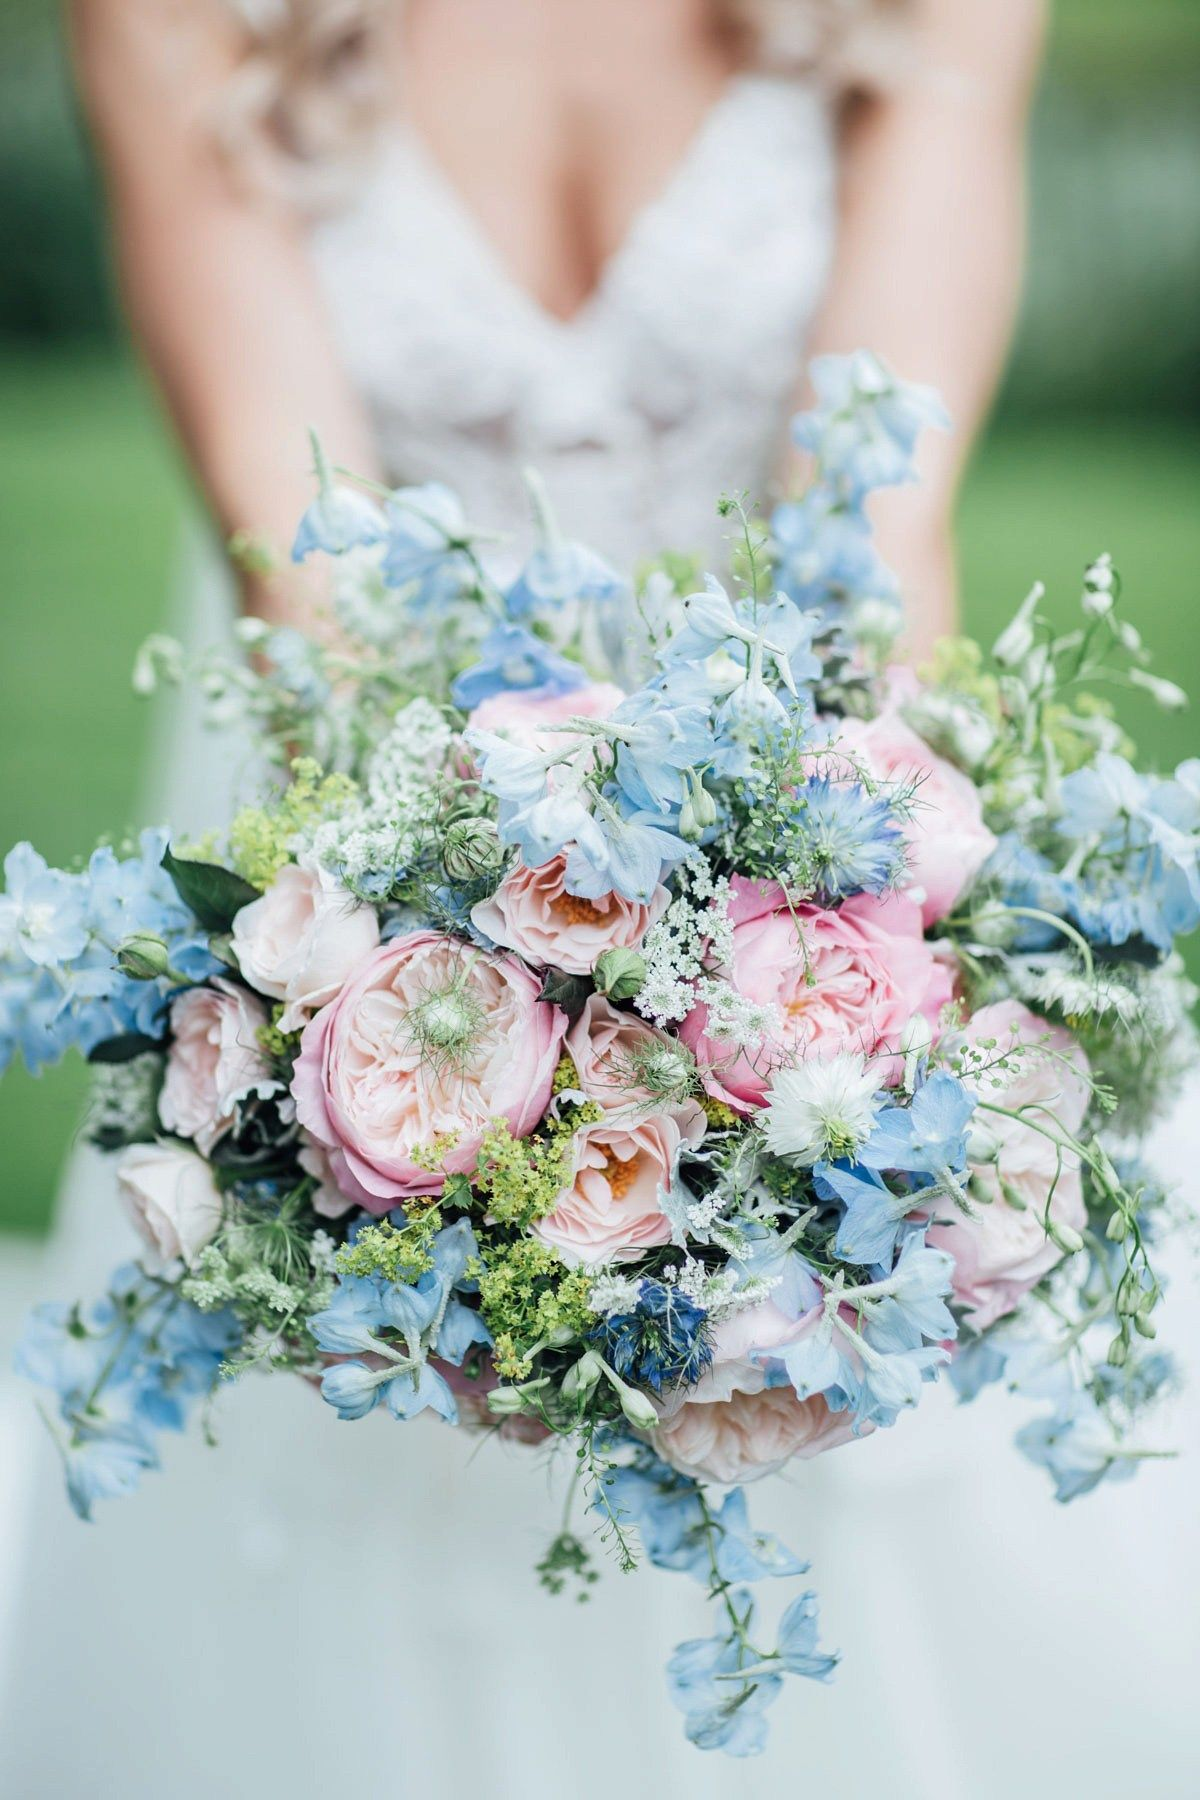 A vera wang gown for a whimsical and romantic walled garden wedding